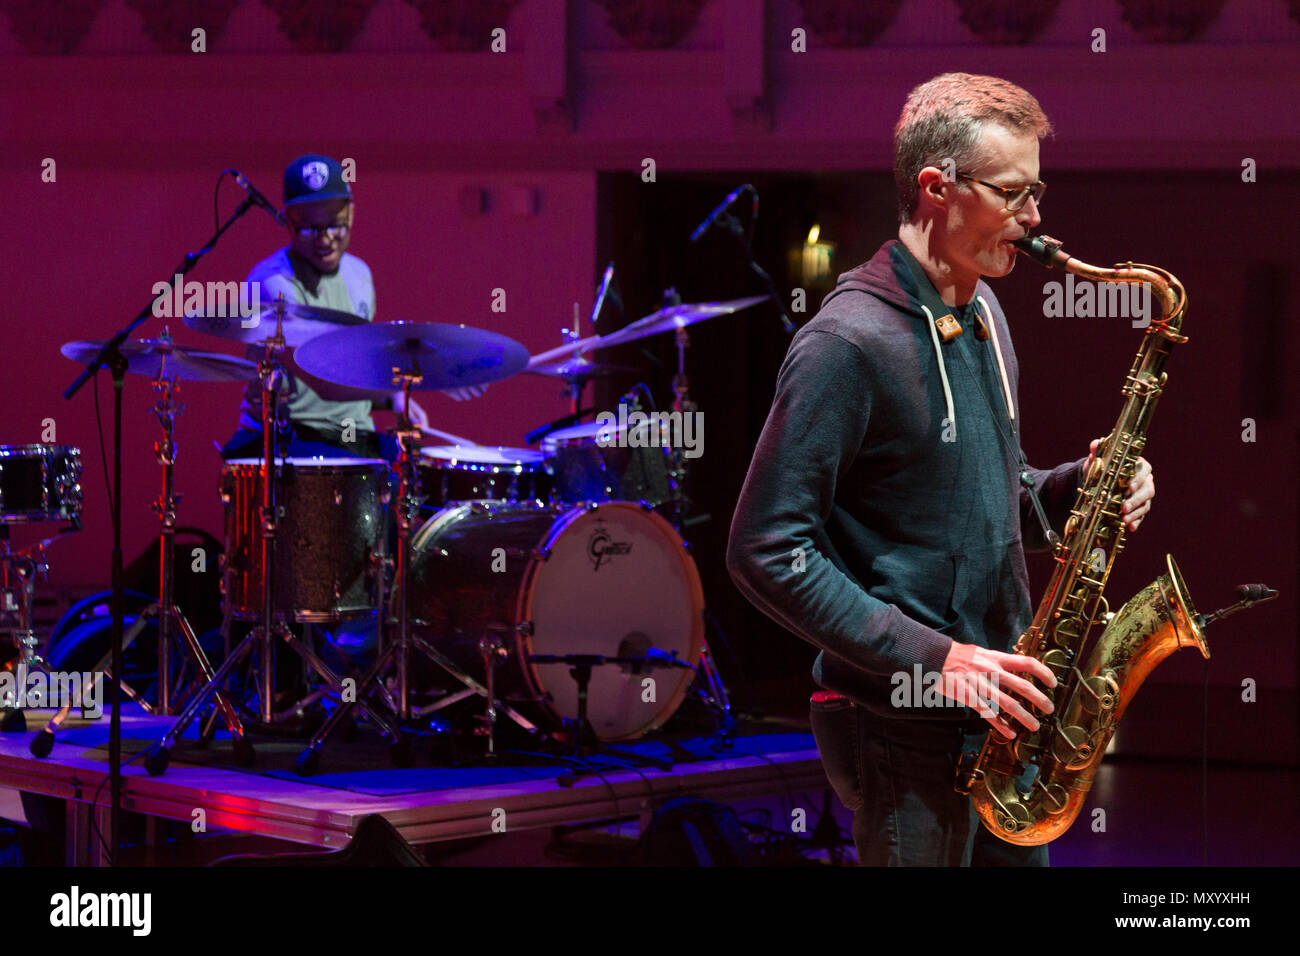 Bob Reynolds Quartet, sound check at London Saxophone Festival, Cadogan Hall, Chelsea. May 2018 - Stock Image